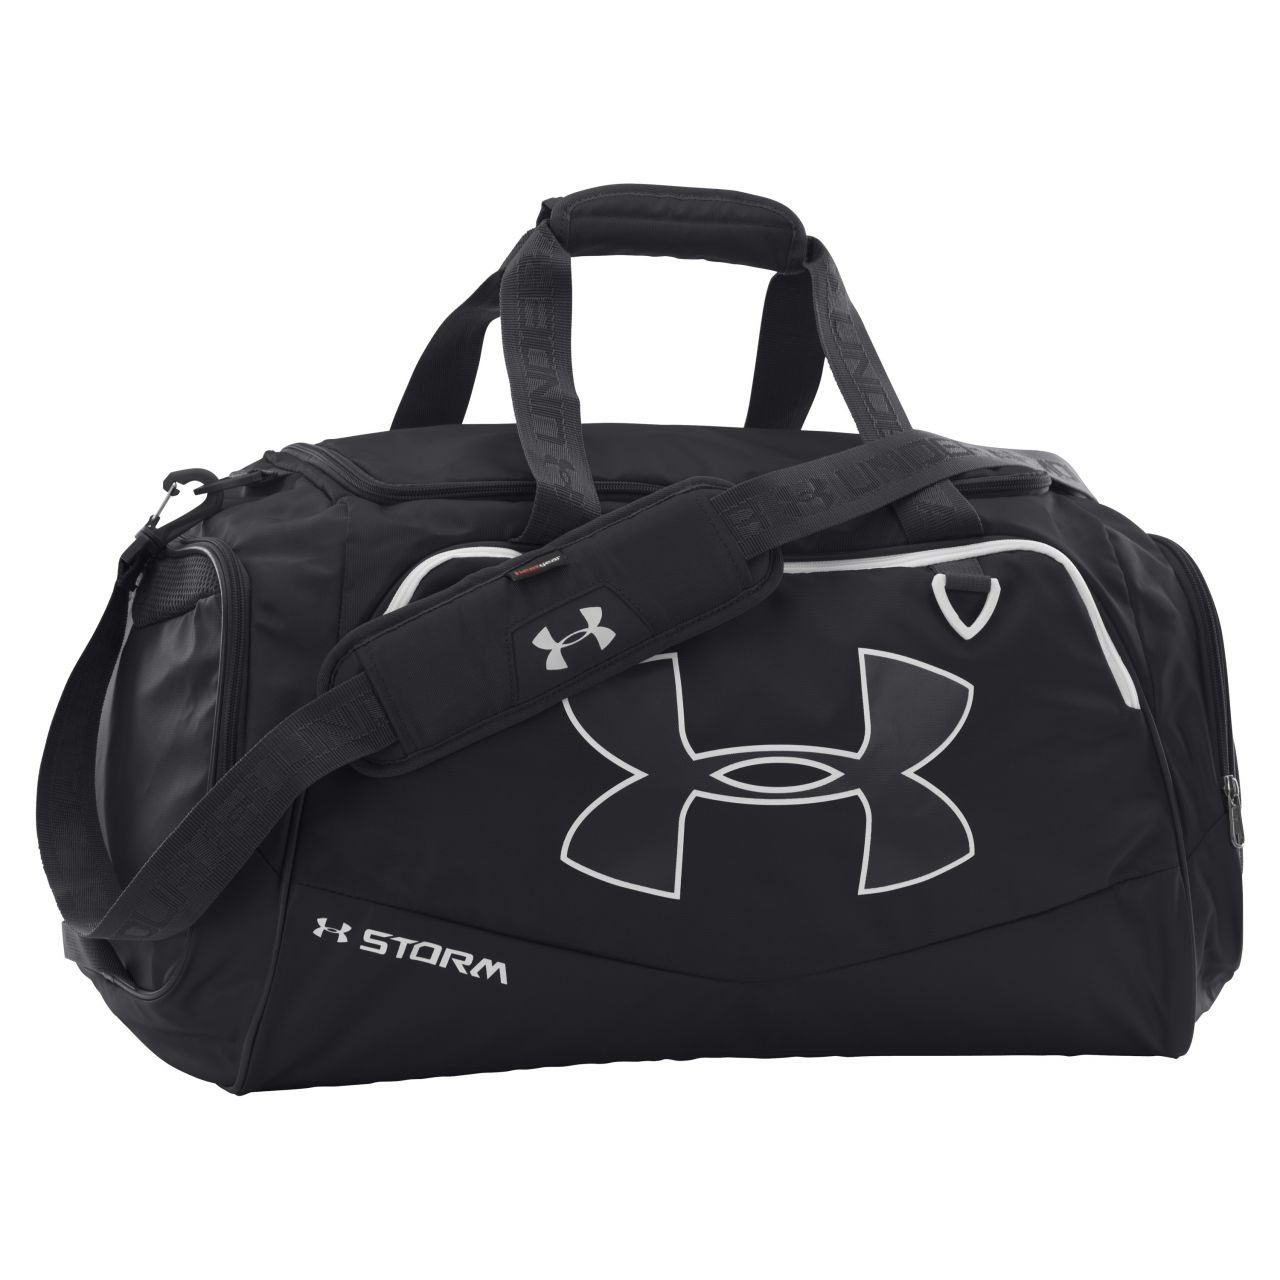 Bolsa Under Armour Undeniable LG Duffel II negra